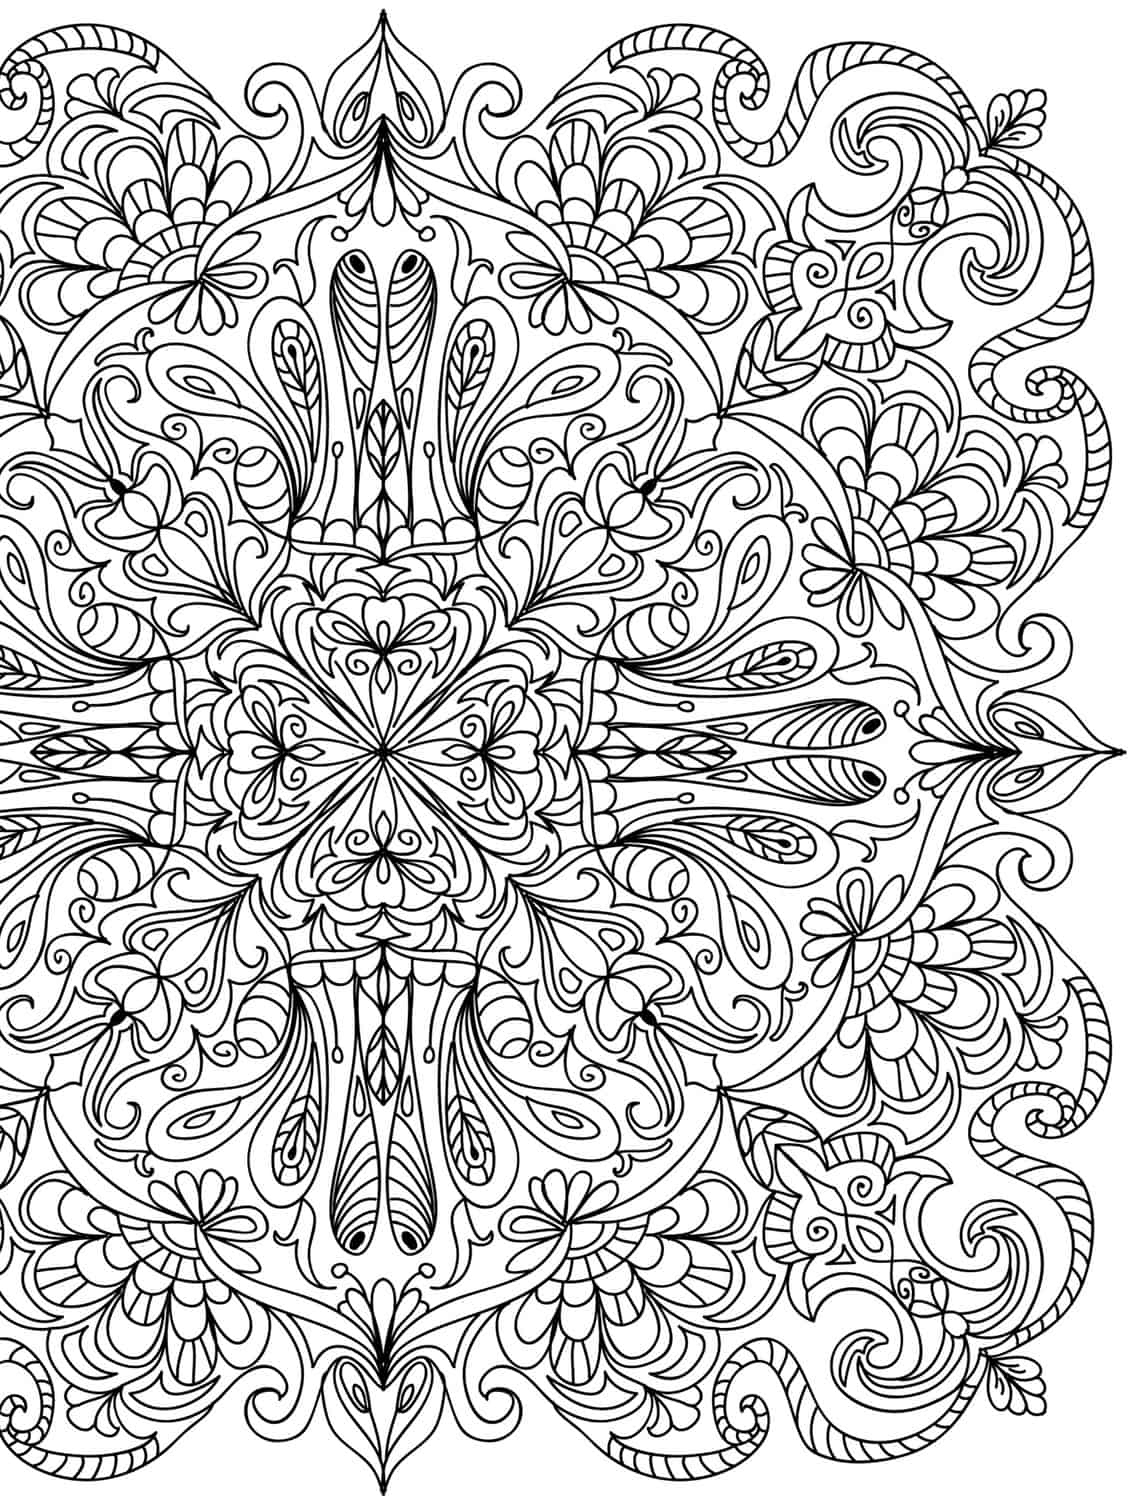 15 CRAZY Busy Coloring Pages for Adults Page 13 of 16 Nerdy Mamma